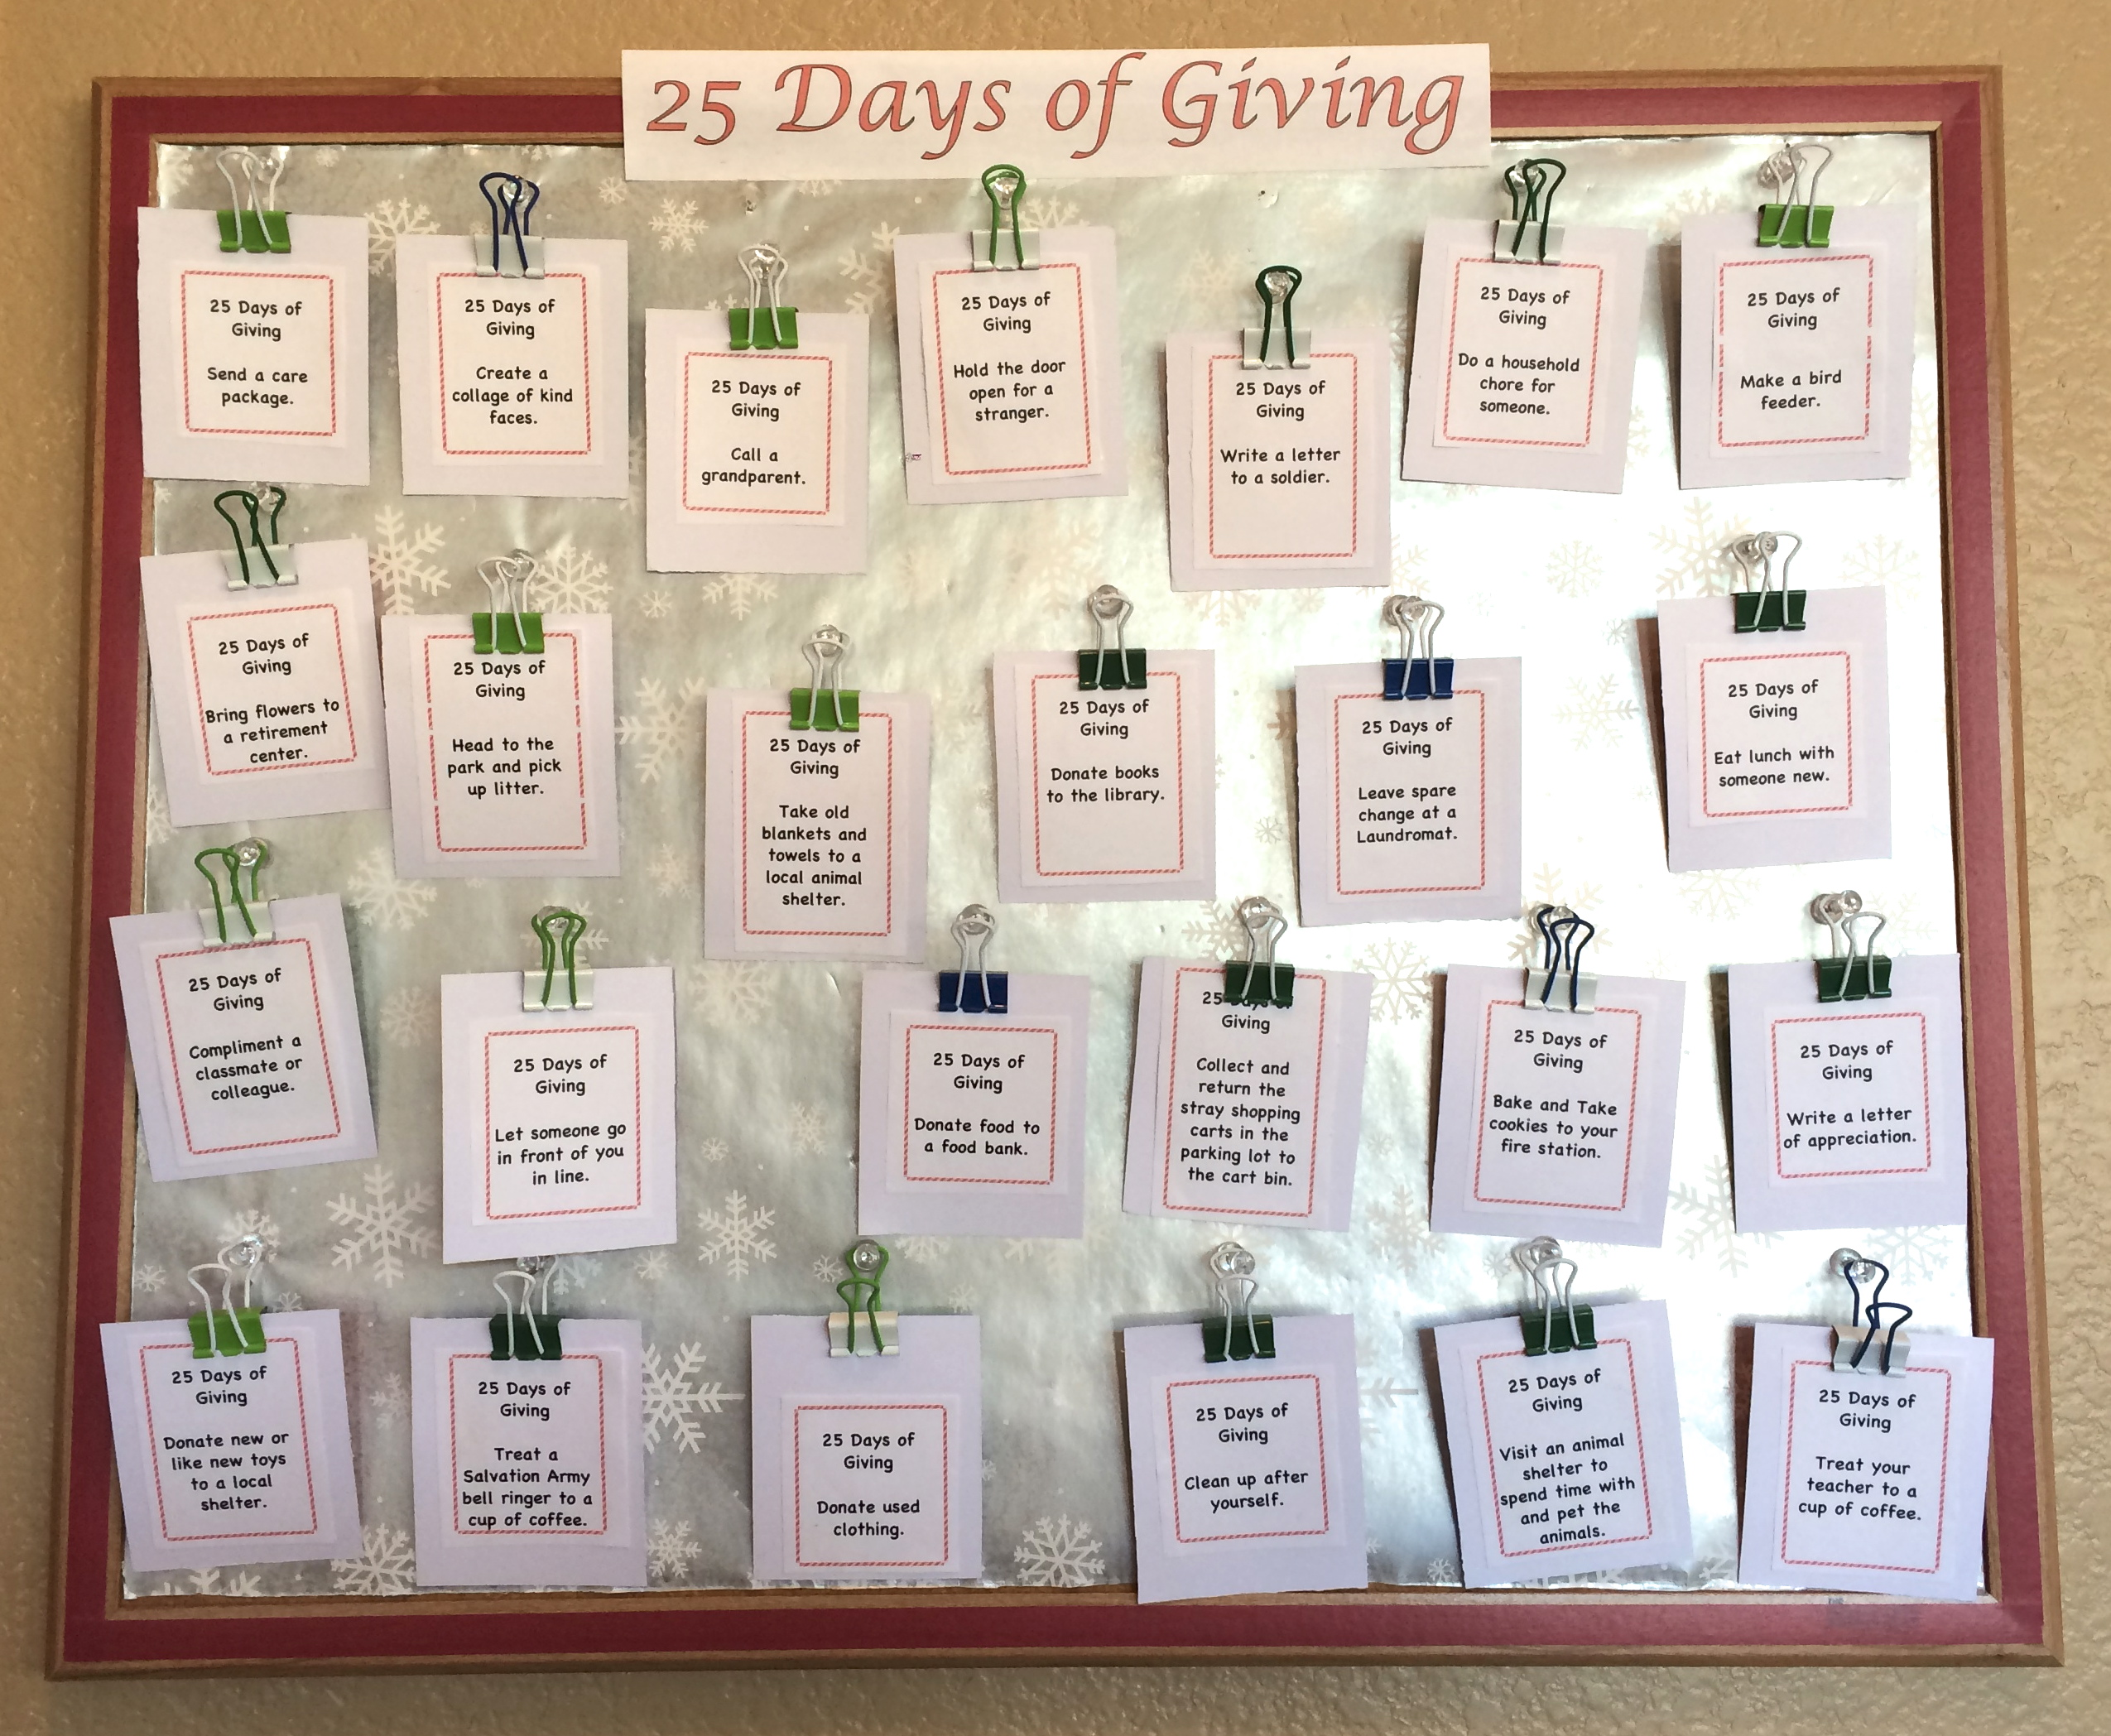 25 Days of Giving Calendar